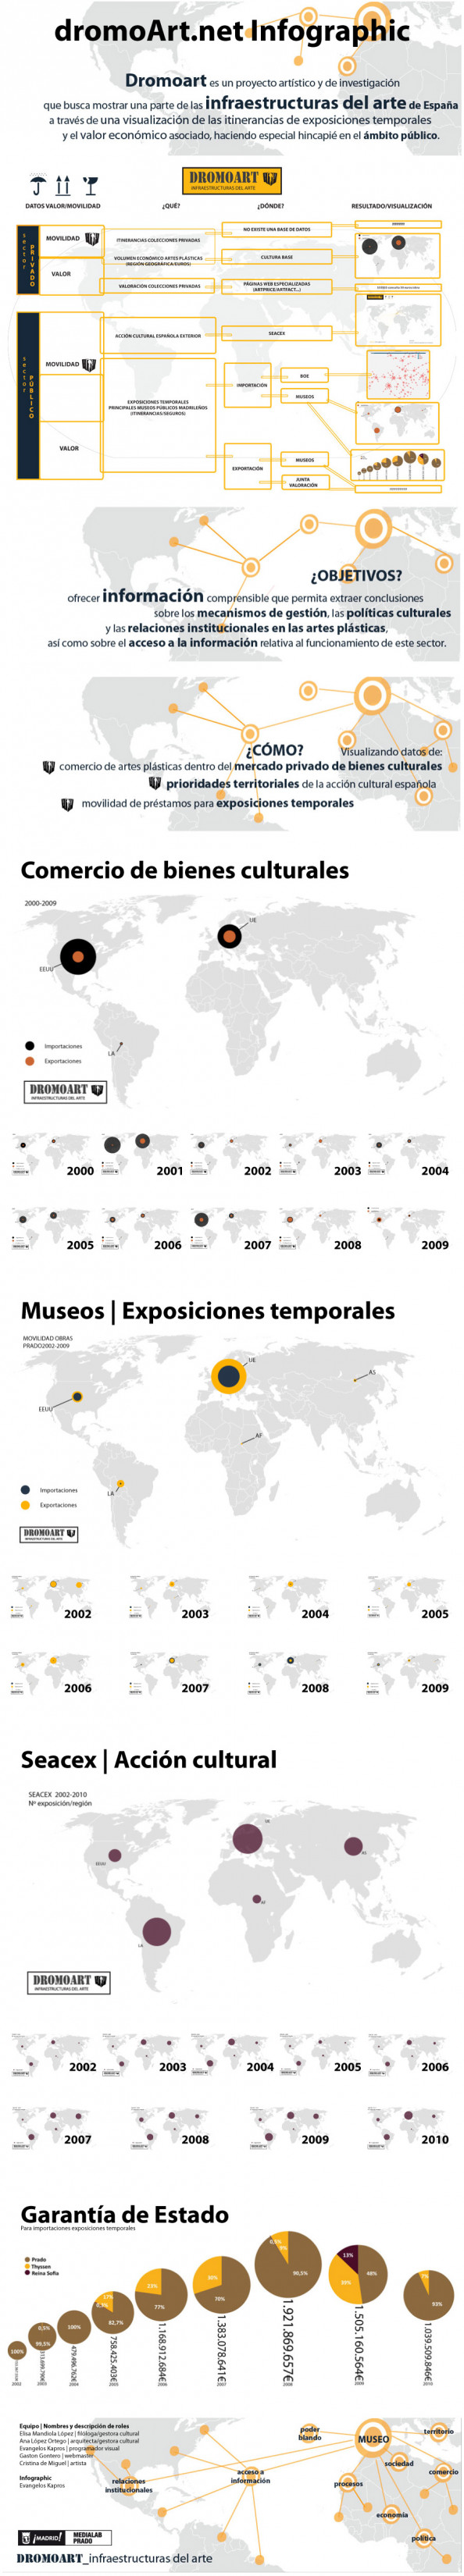 DromoArt: Visualising Spanish Art Mobility Infographic